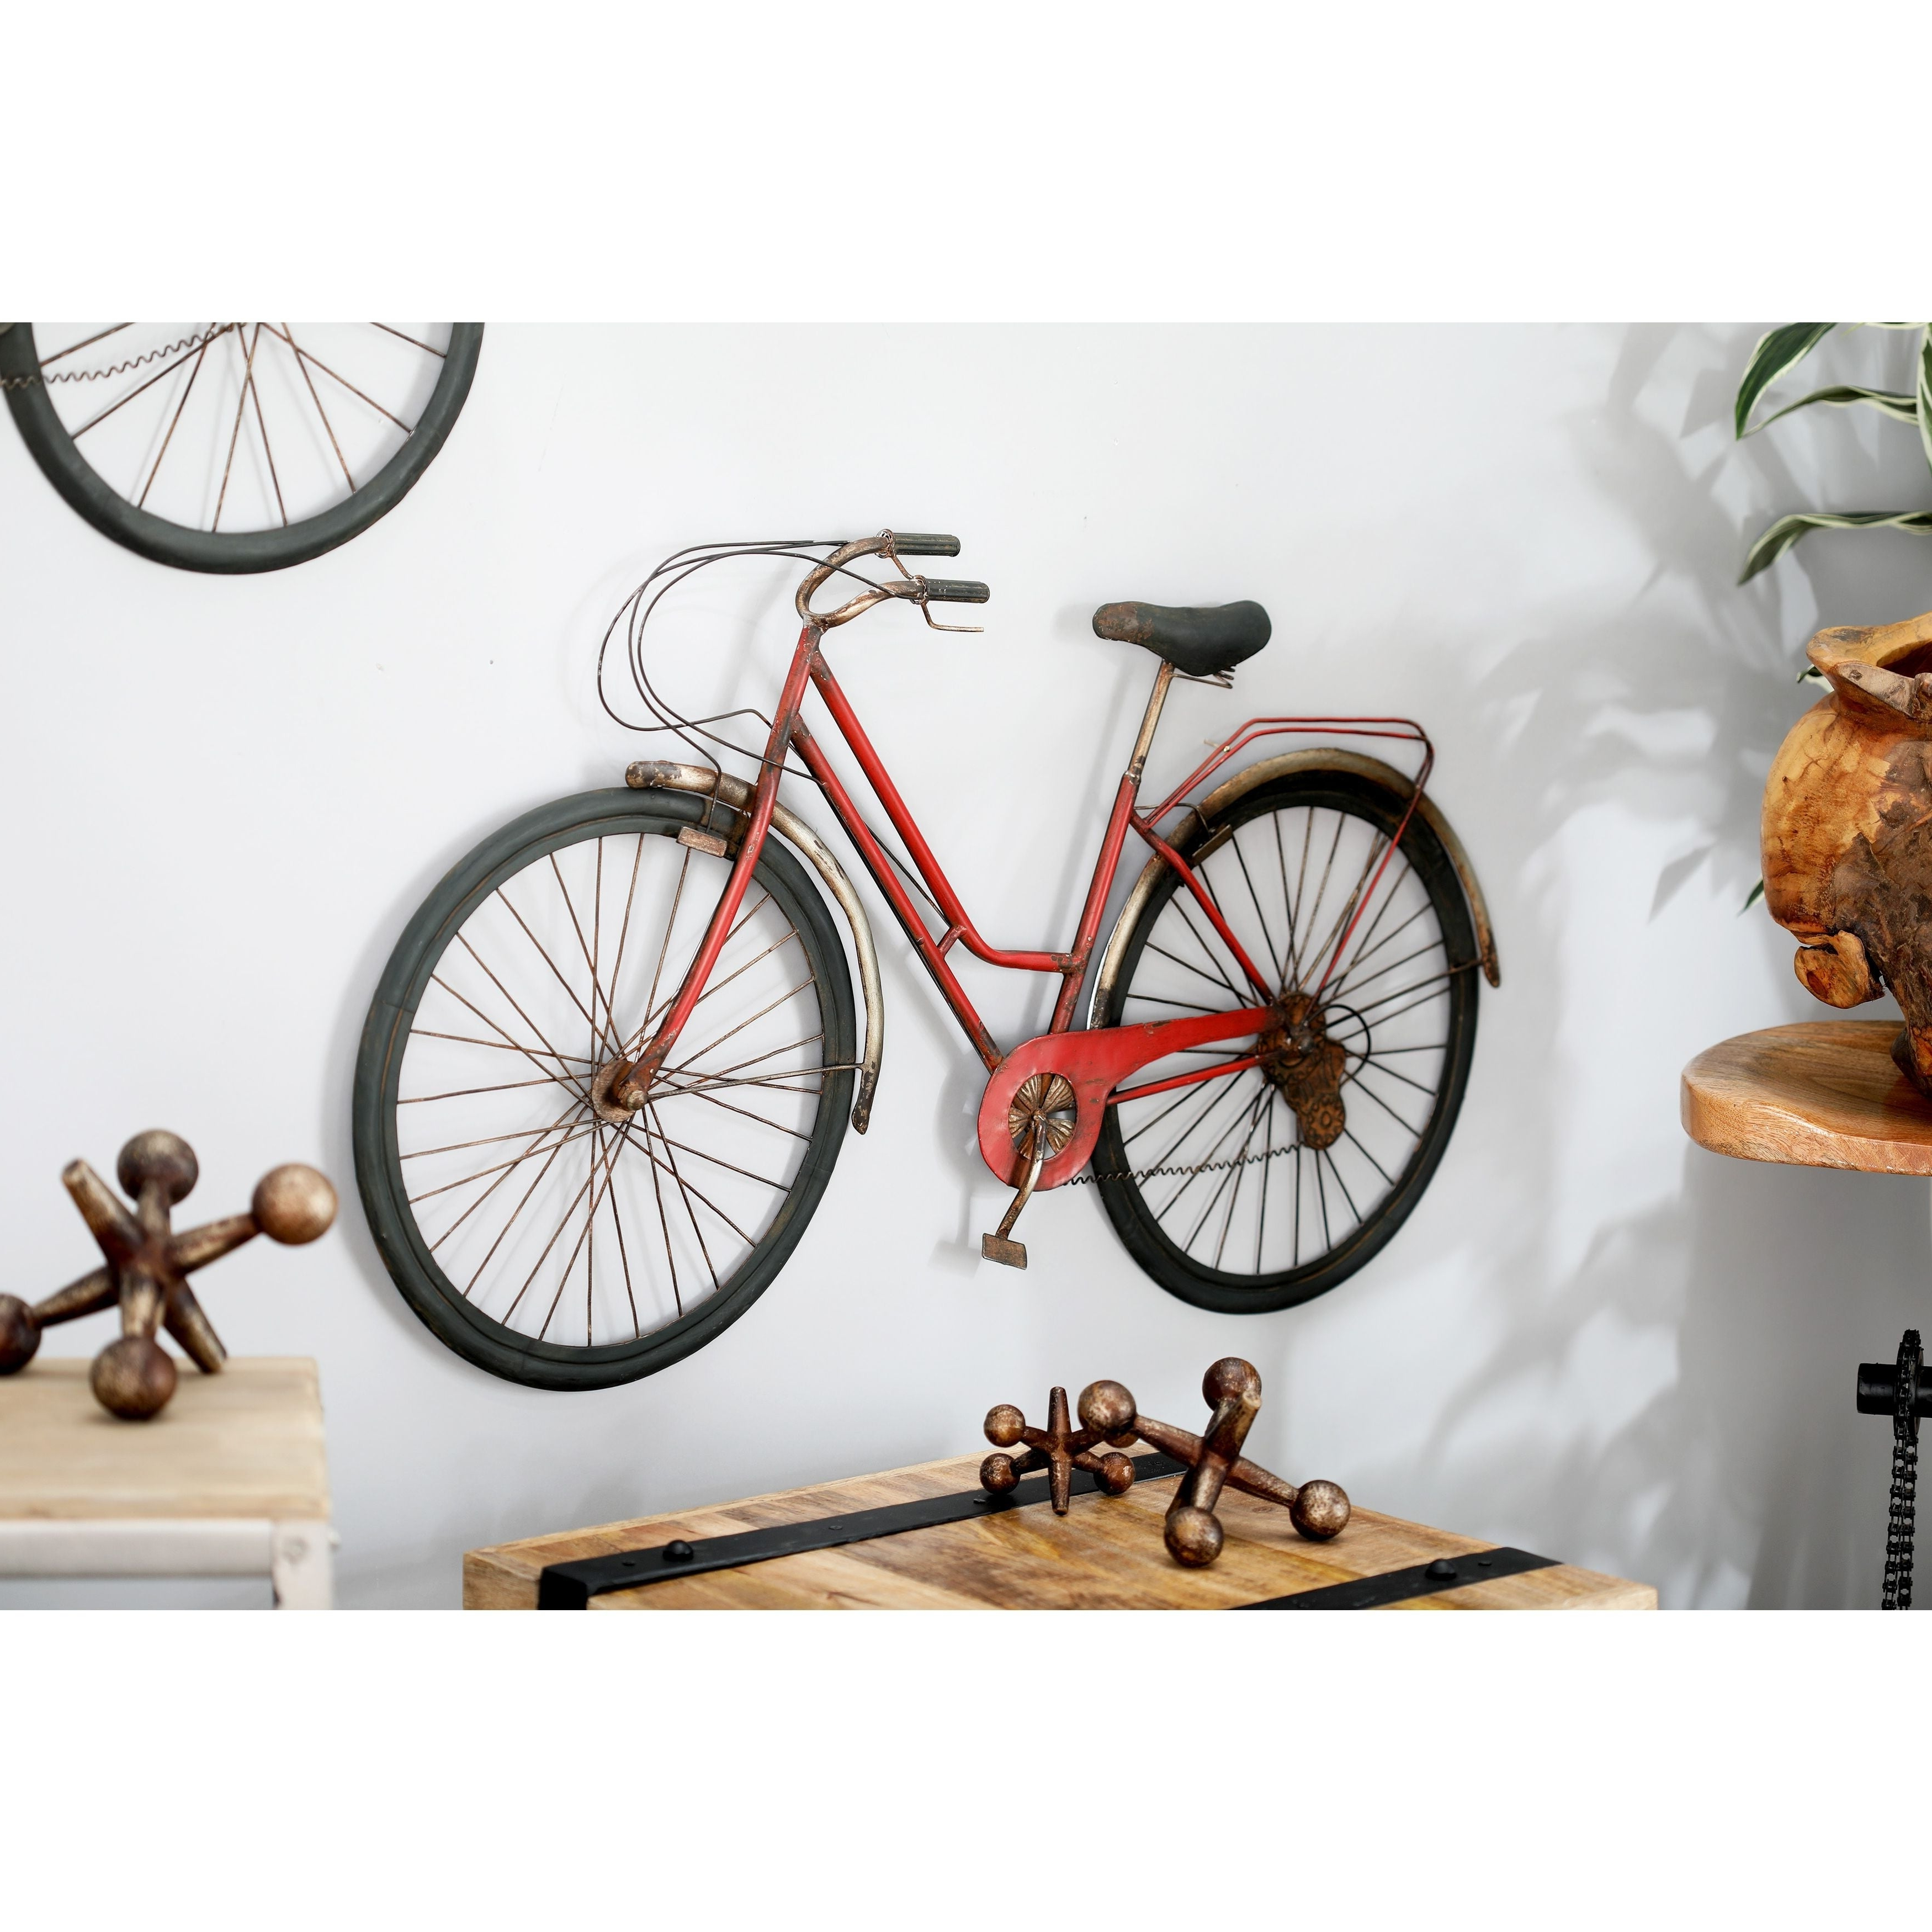 Most Recent Shop Modern Iron Red Bicycle Wall Decor – Free Shipping Today Throughout Bike Wall Decor (View 19 of 20)